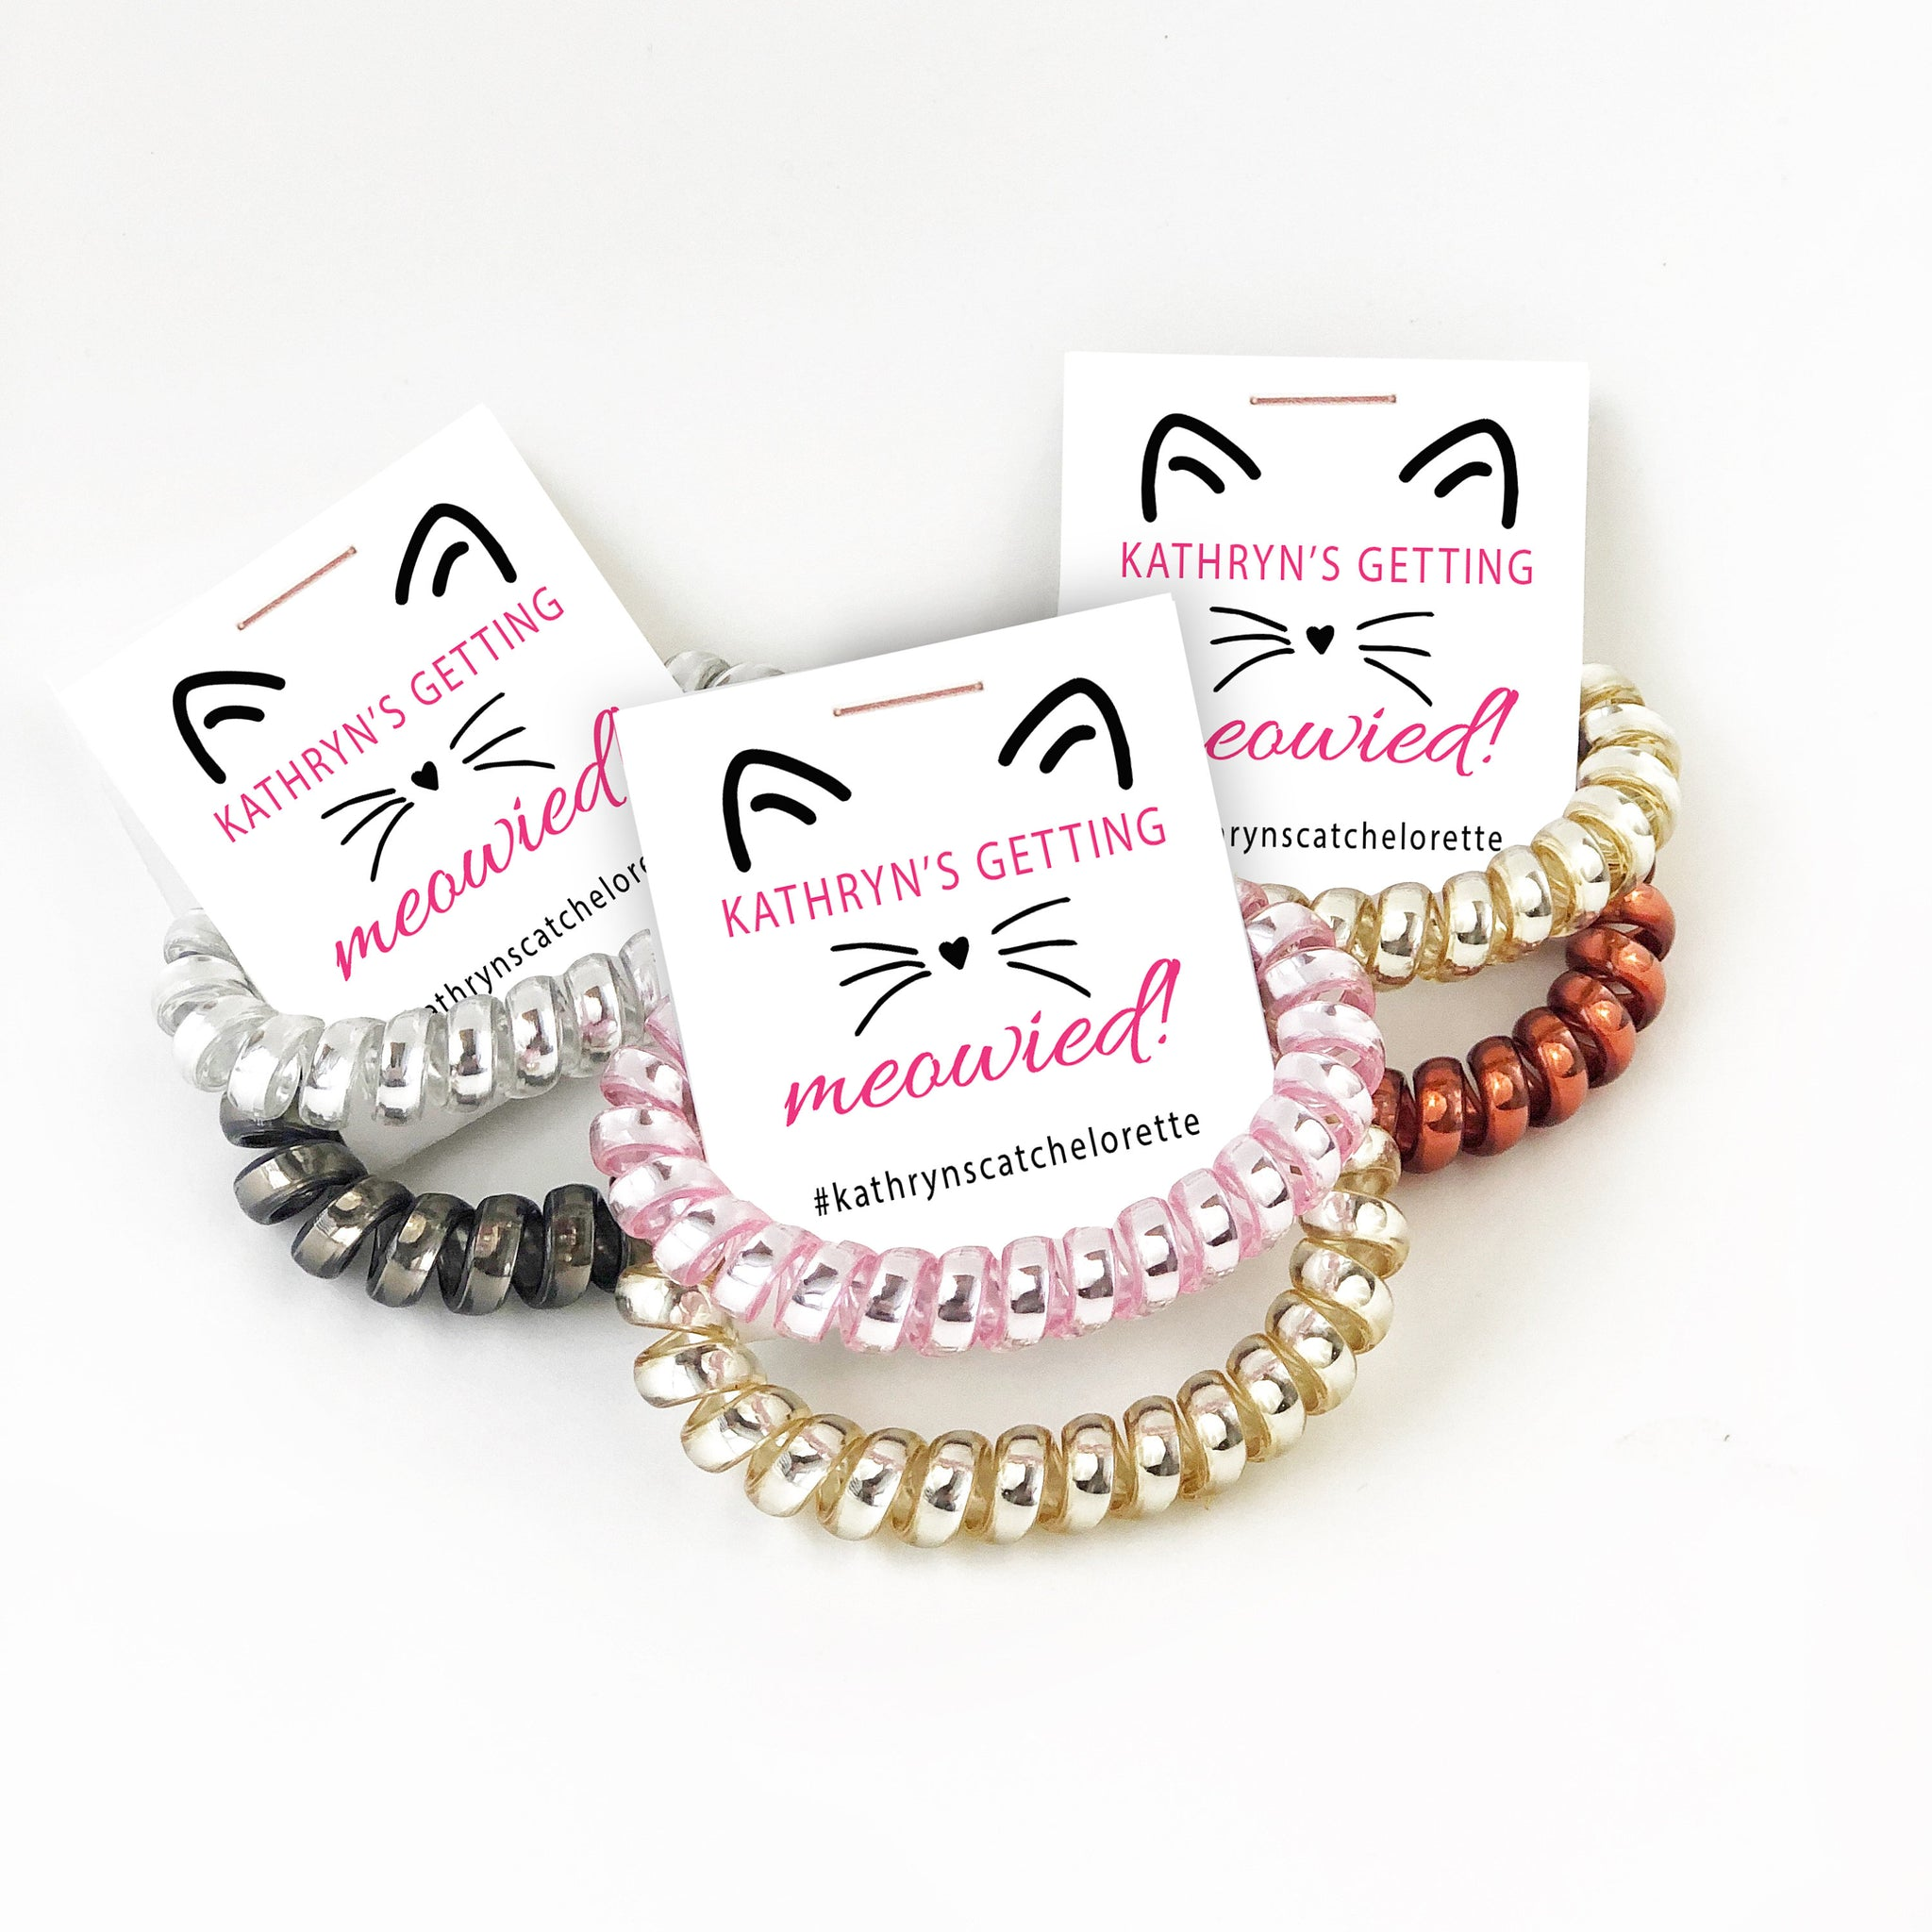 Cat Bachelorette Party Favors, Spiral Hair Tie Favors, Getting Meowied Bachelorette - @PlumPolkaDot